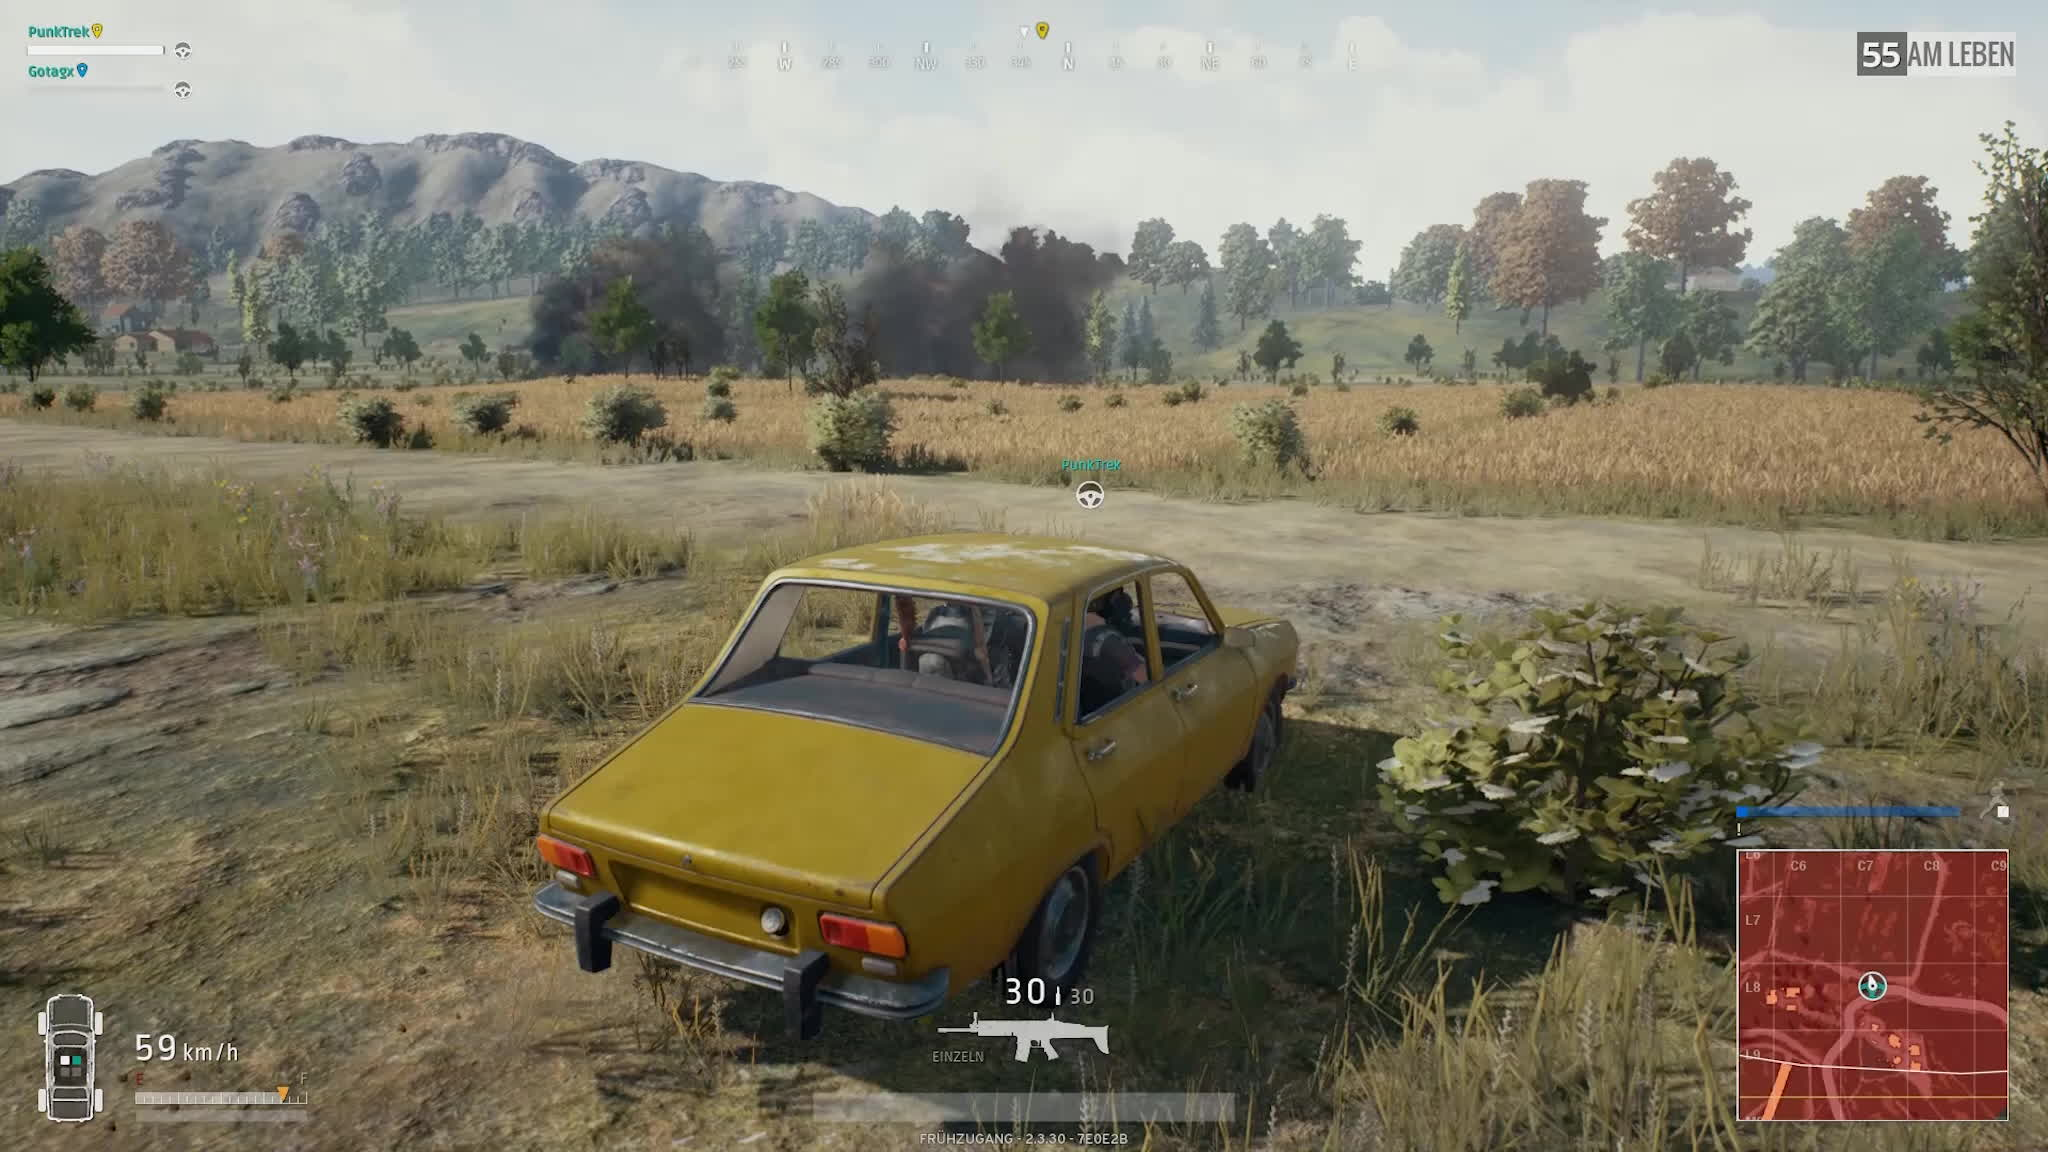 Pubg Playerunknown Battlegrounds Gifs Search Search Share On Homdor